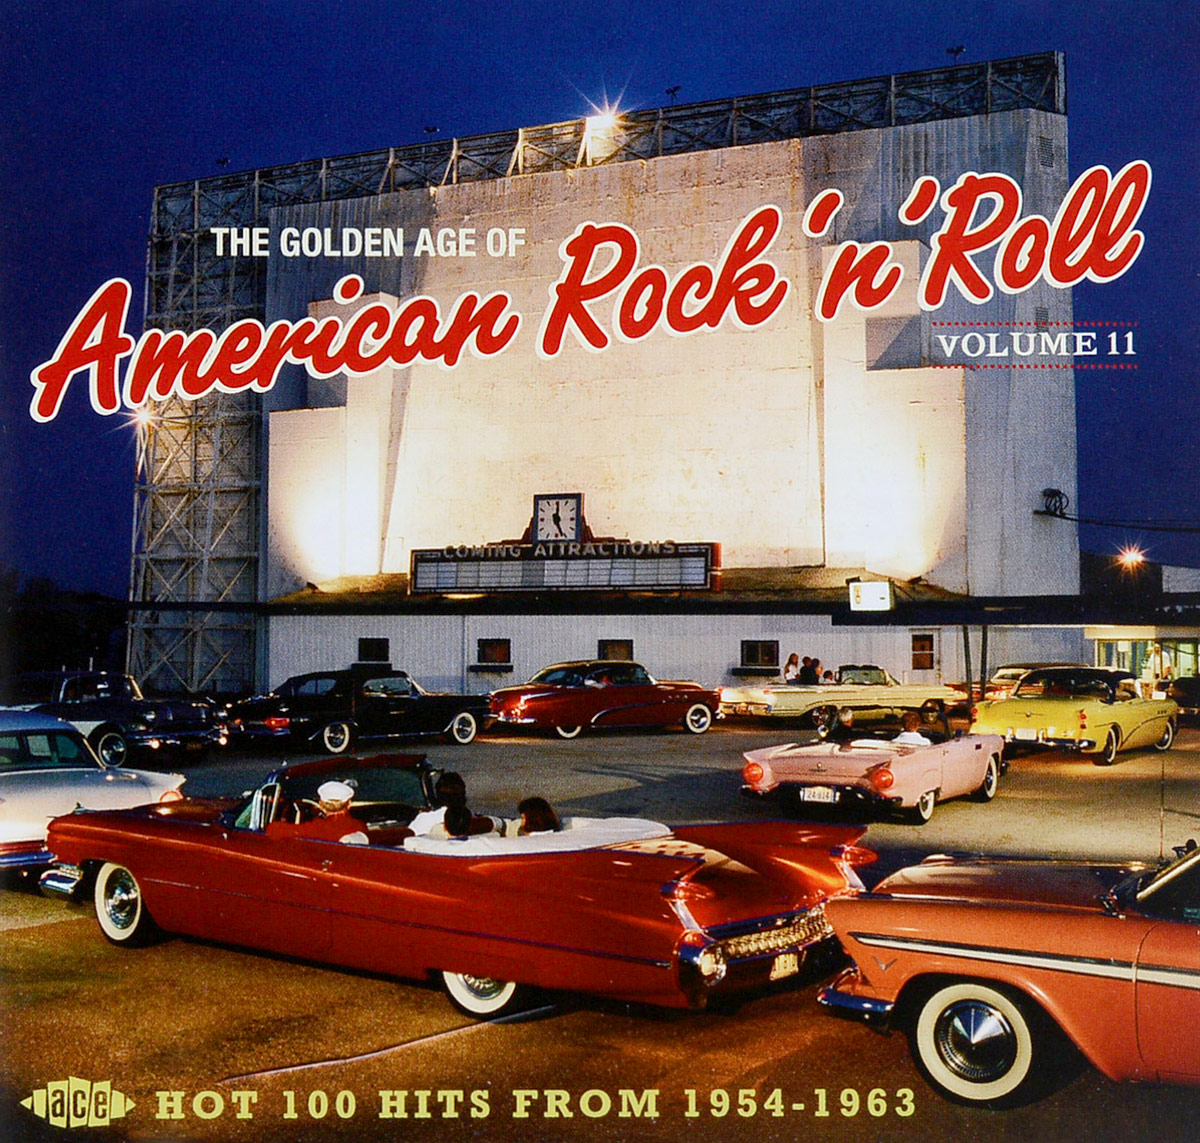 The Golden Age Of American Rock'n'roll Vol. 11 batman the golden age vol 4